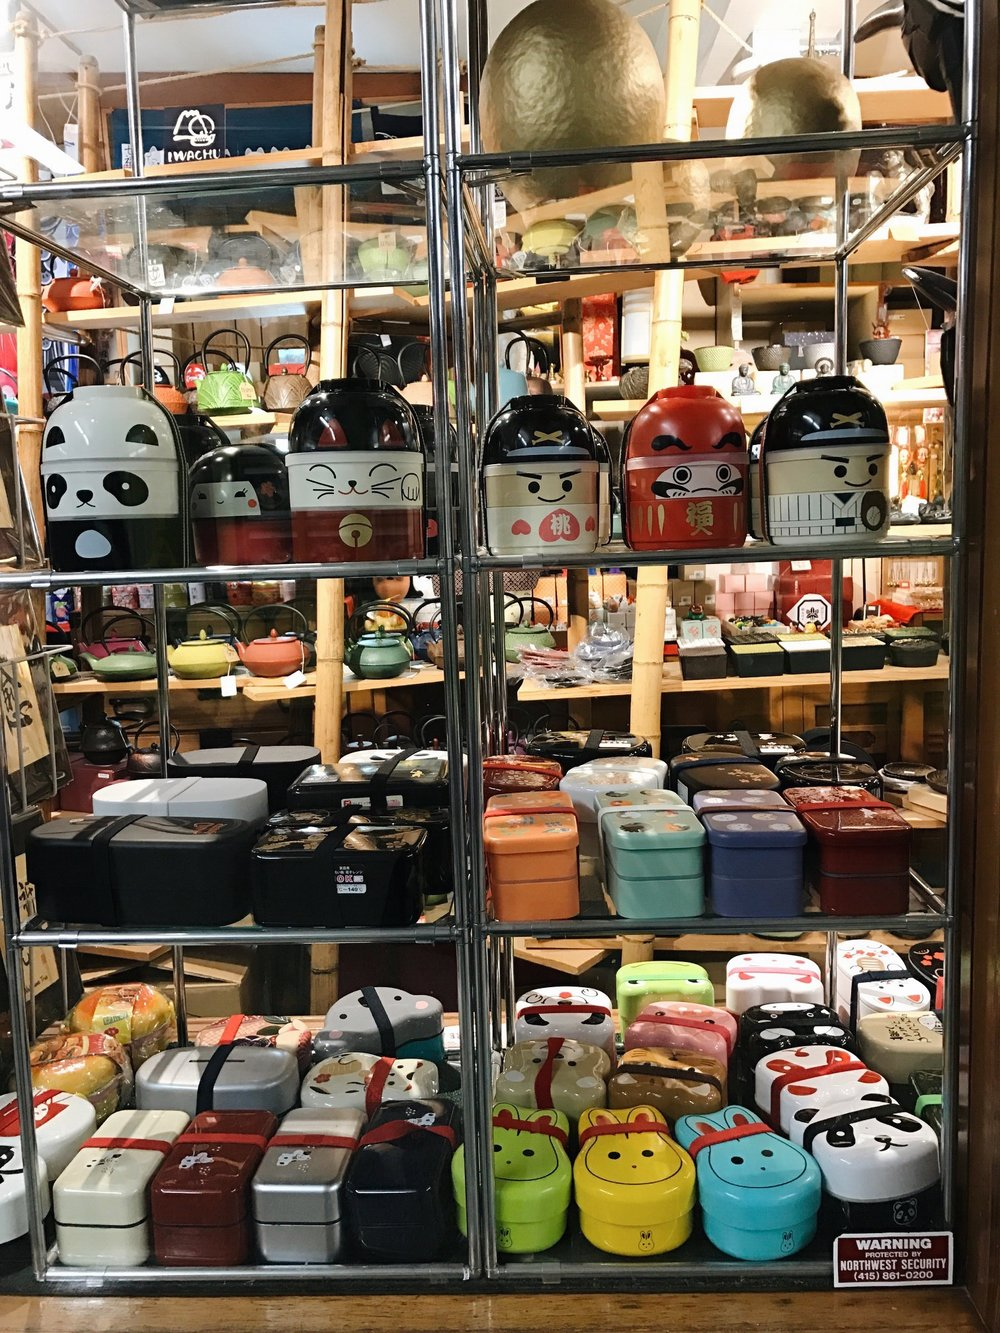 Billions of adorable bento boxes.